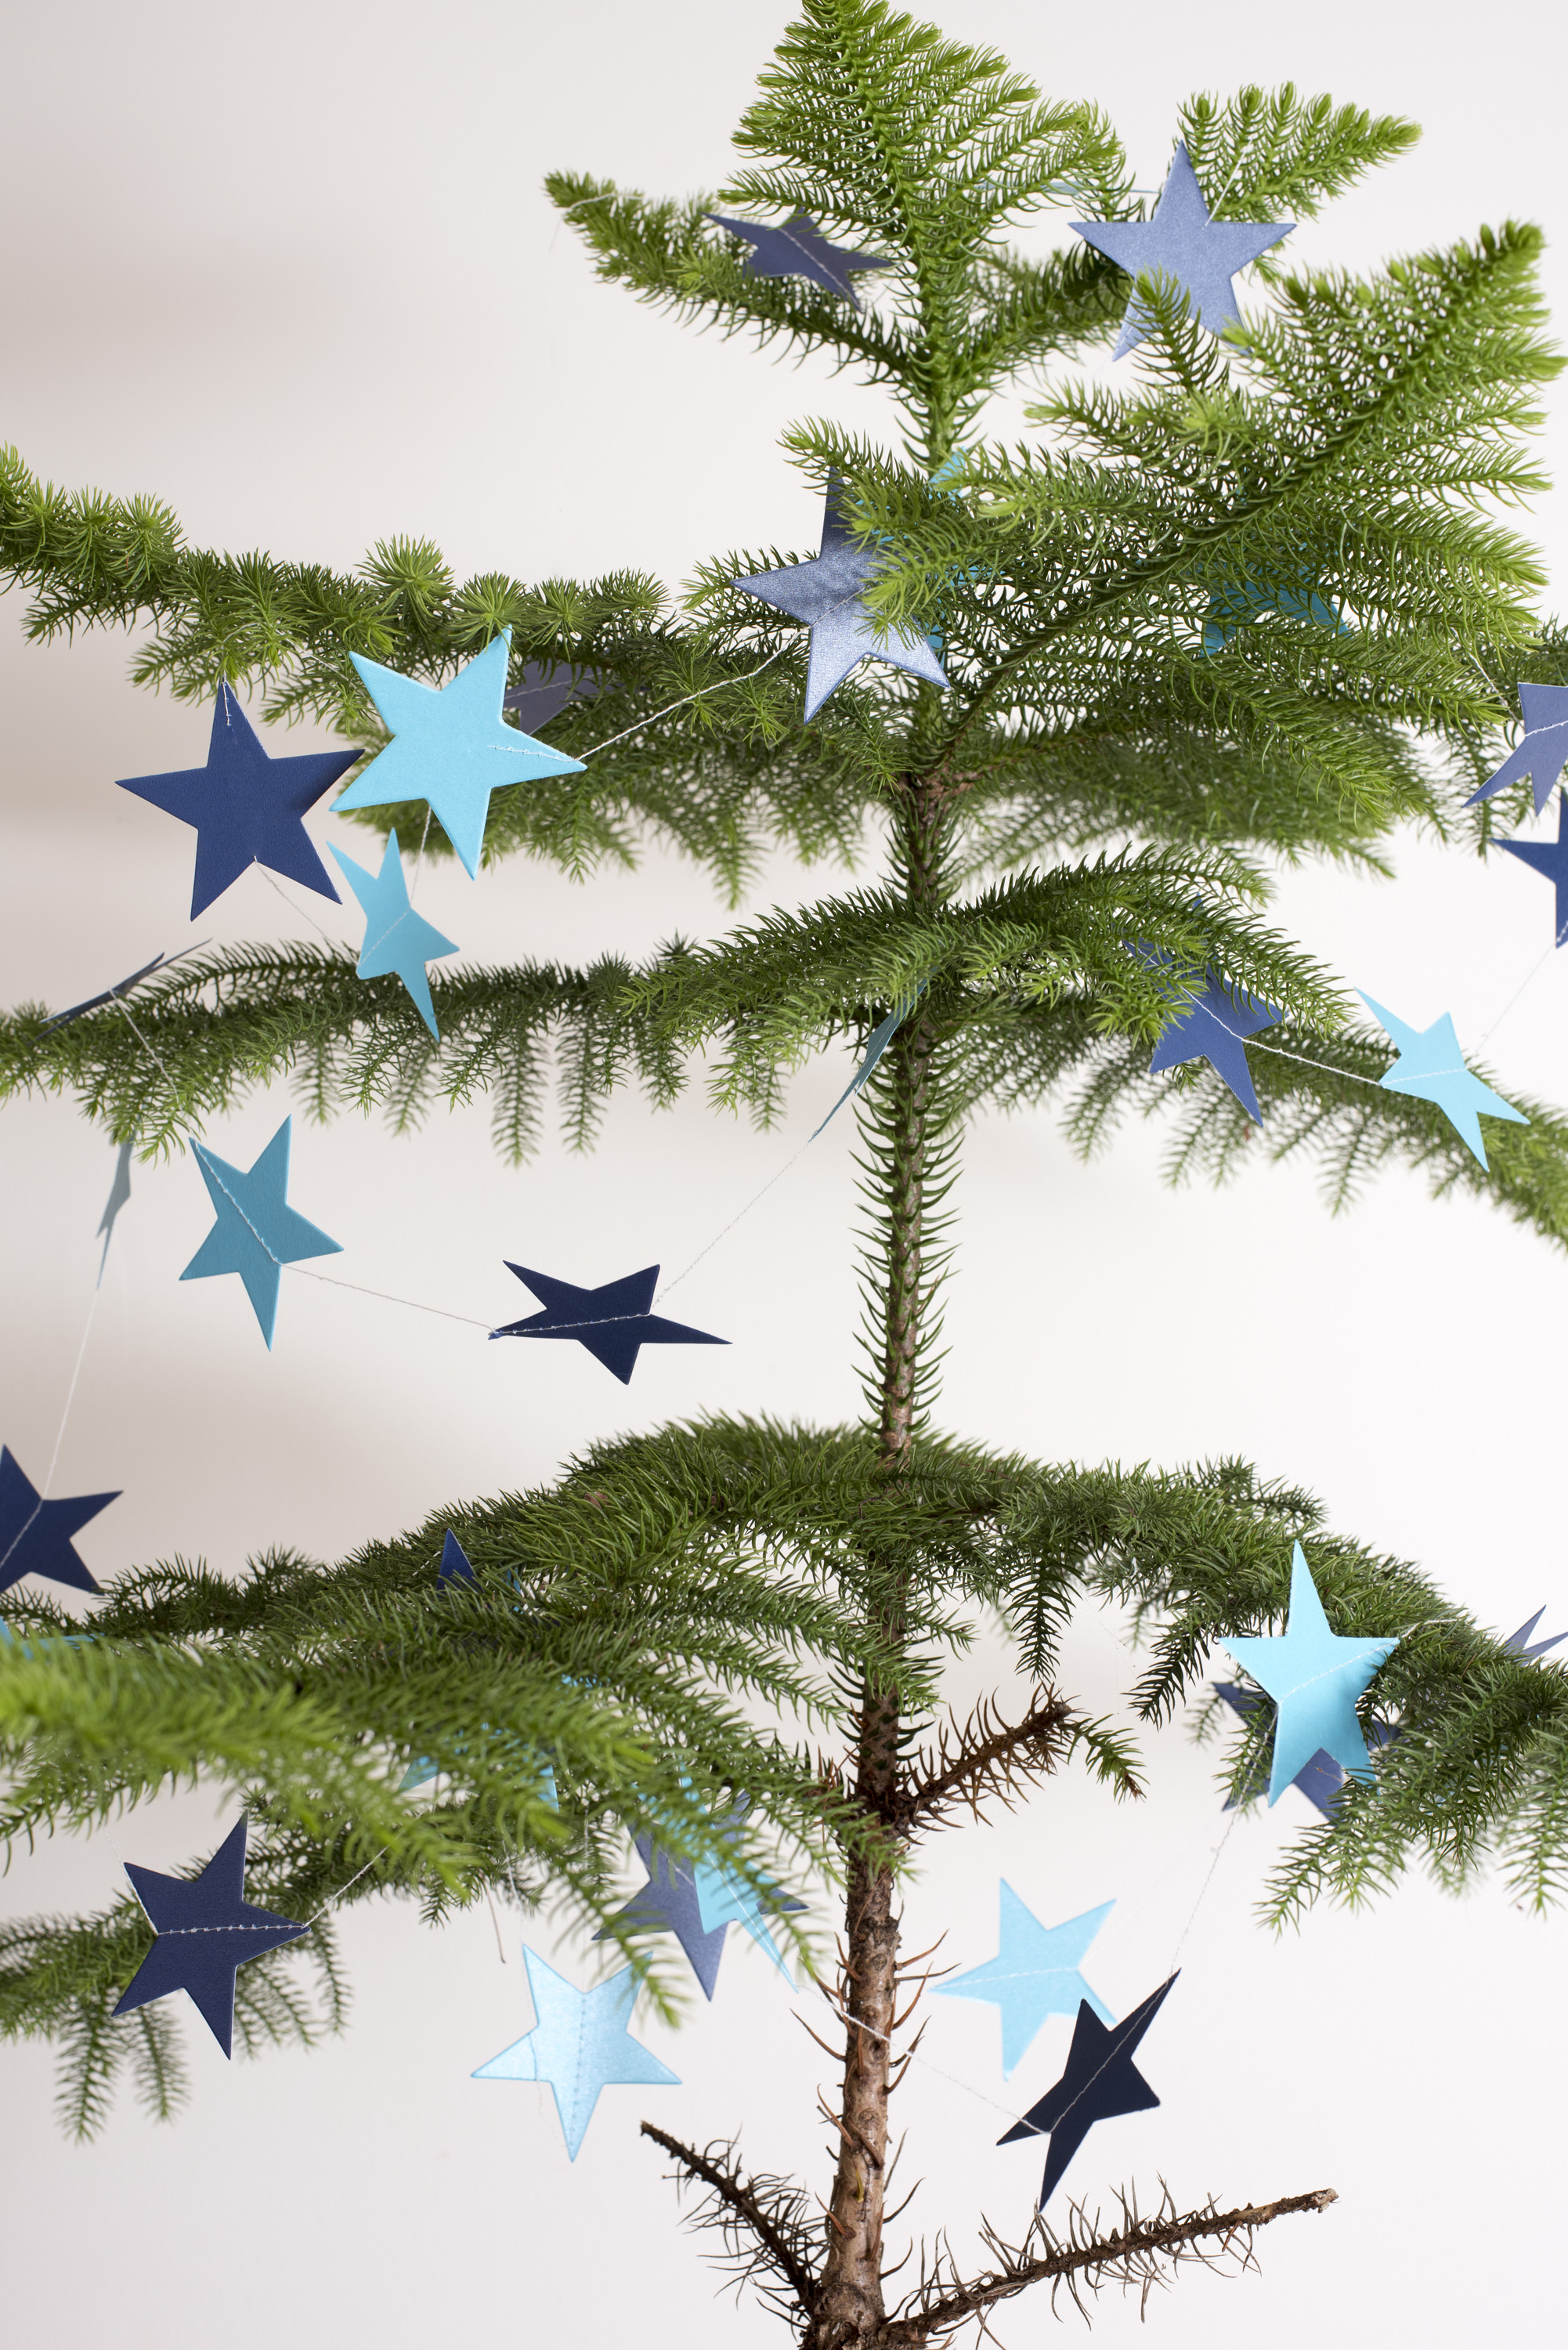 Sparsely decorated natural pine Christmas tree hung with blue paper stars for a simple rustic celebration